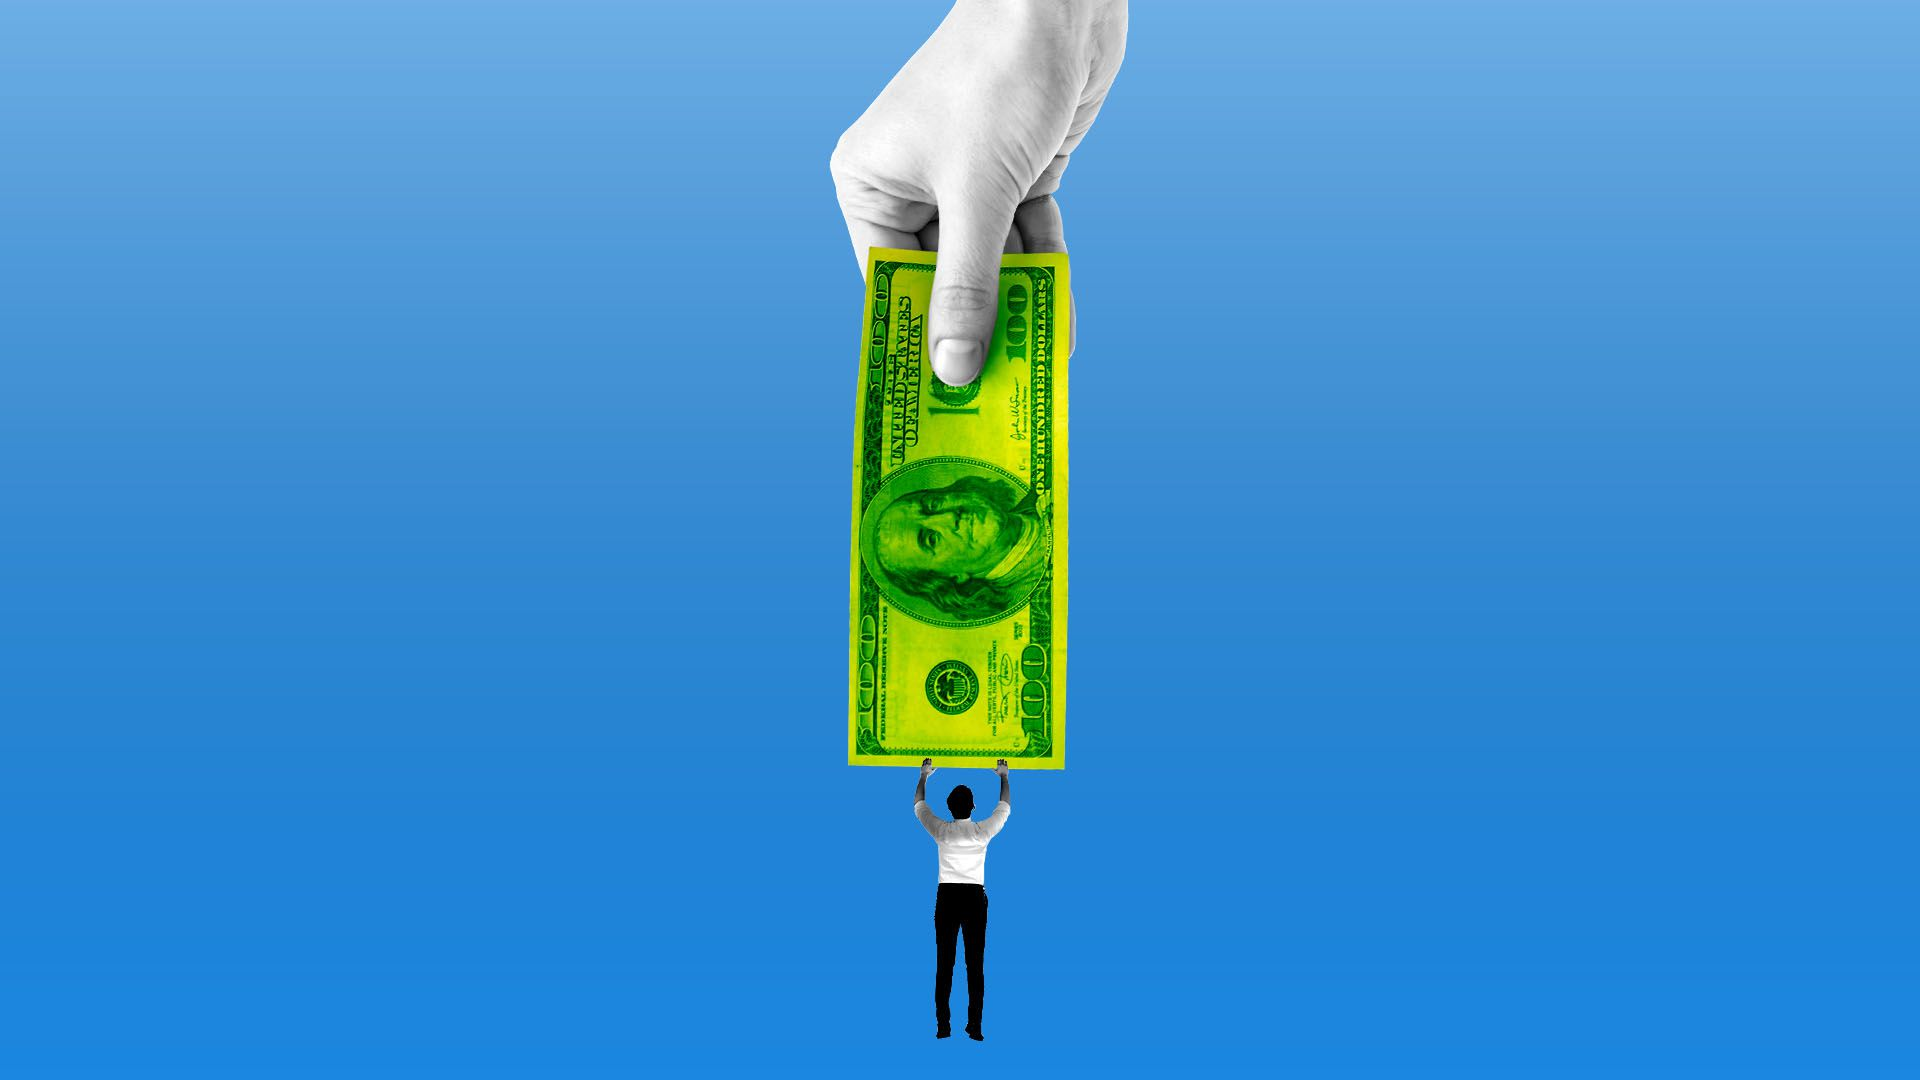 Illustration of little guy clinging to a giant dollar held by hand above him